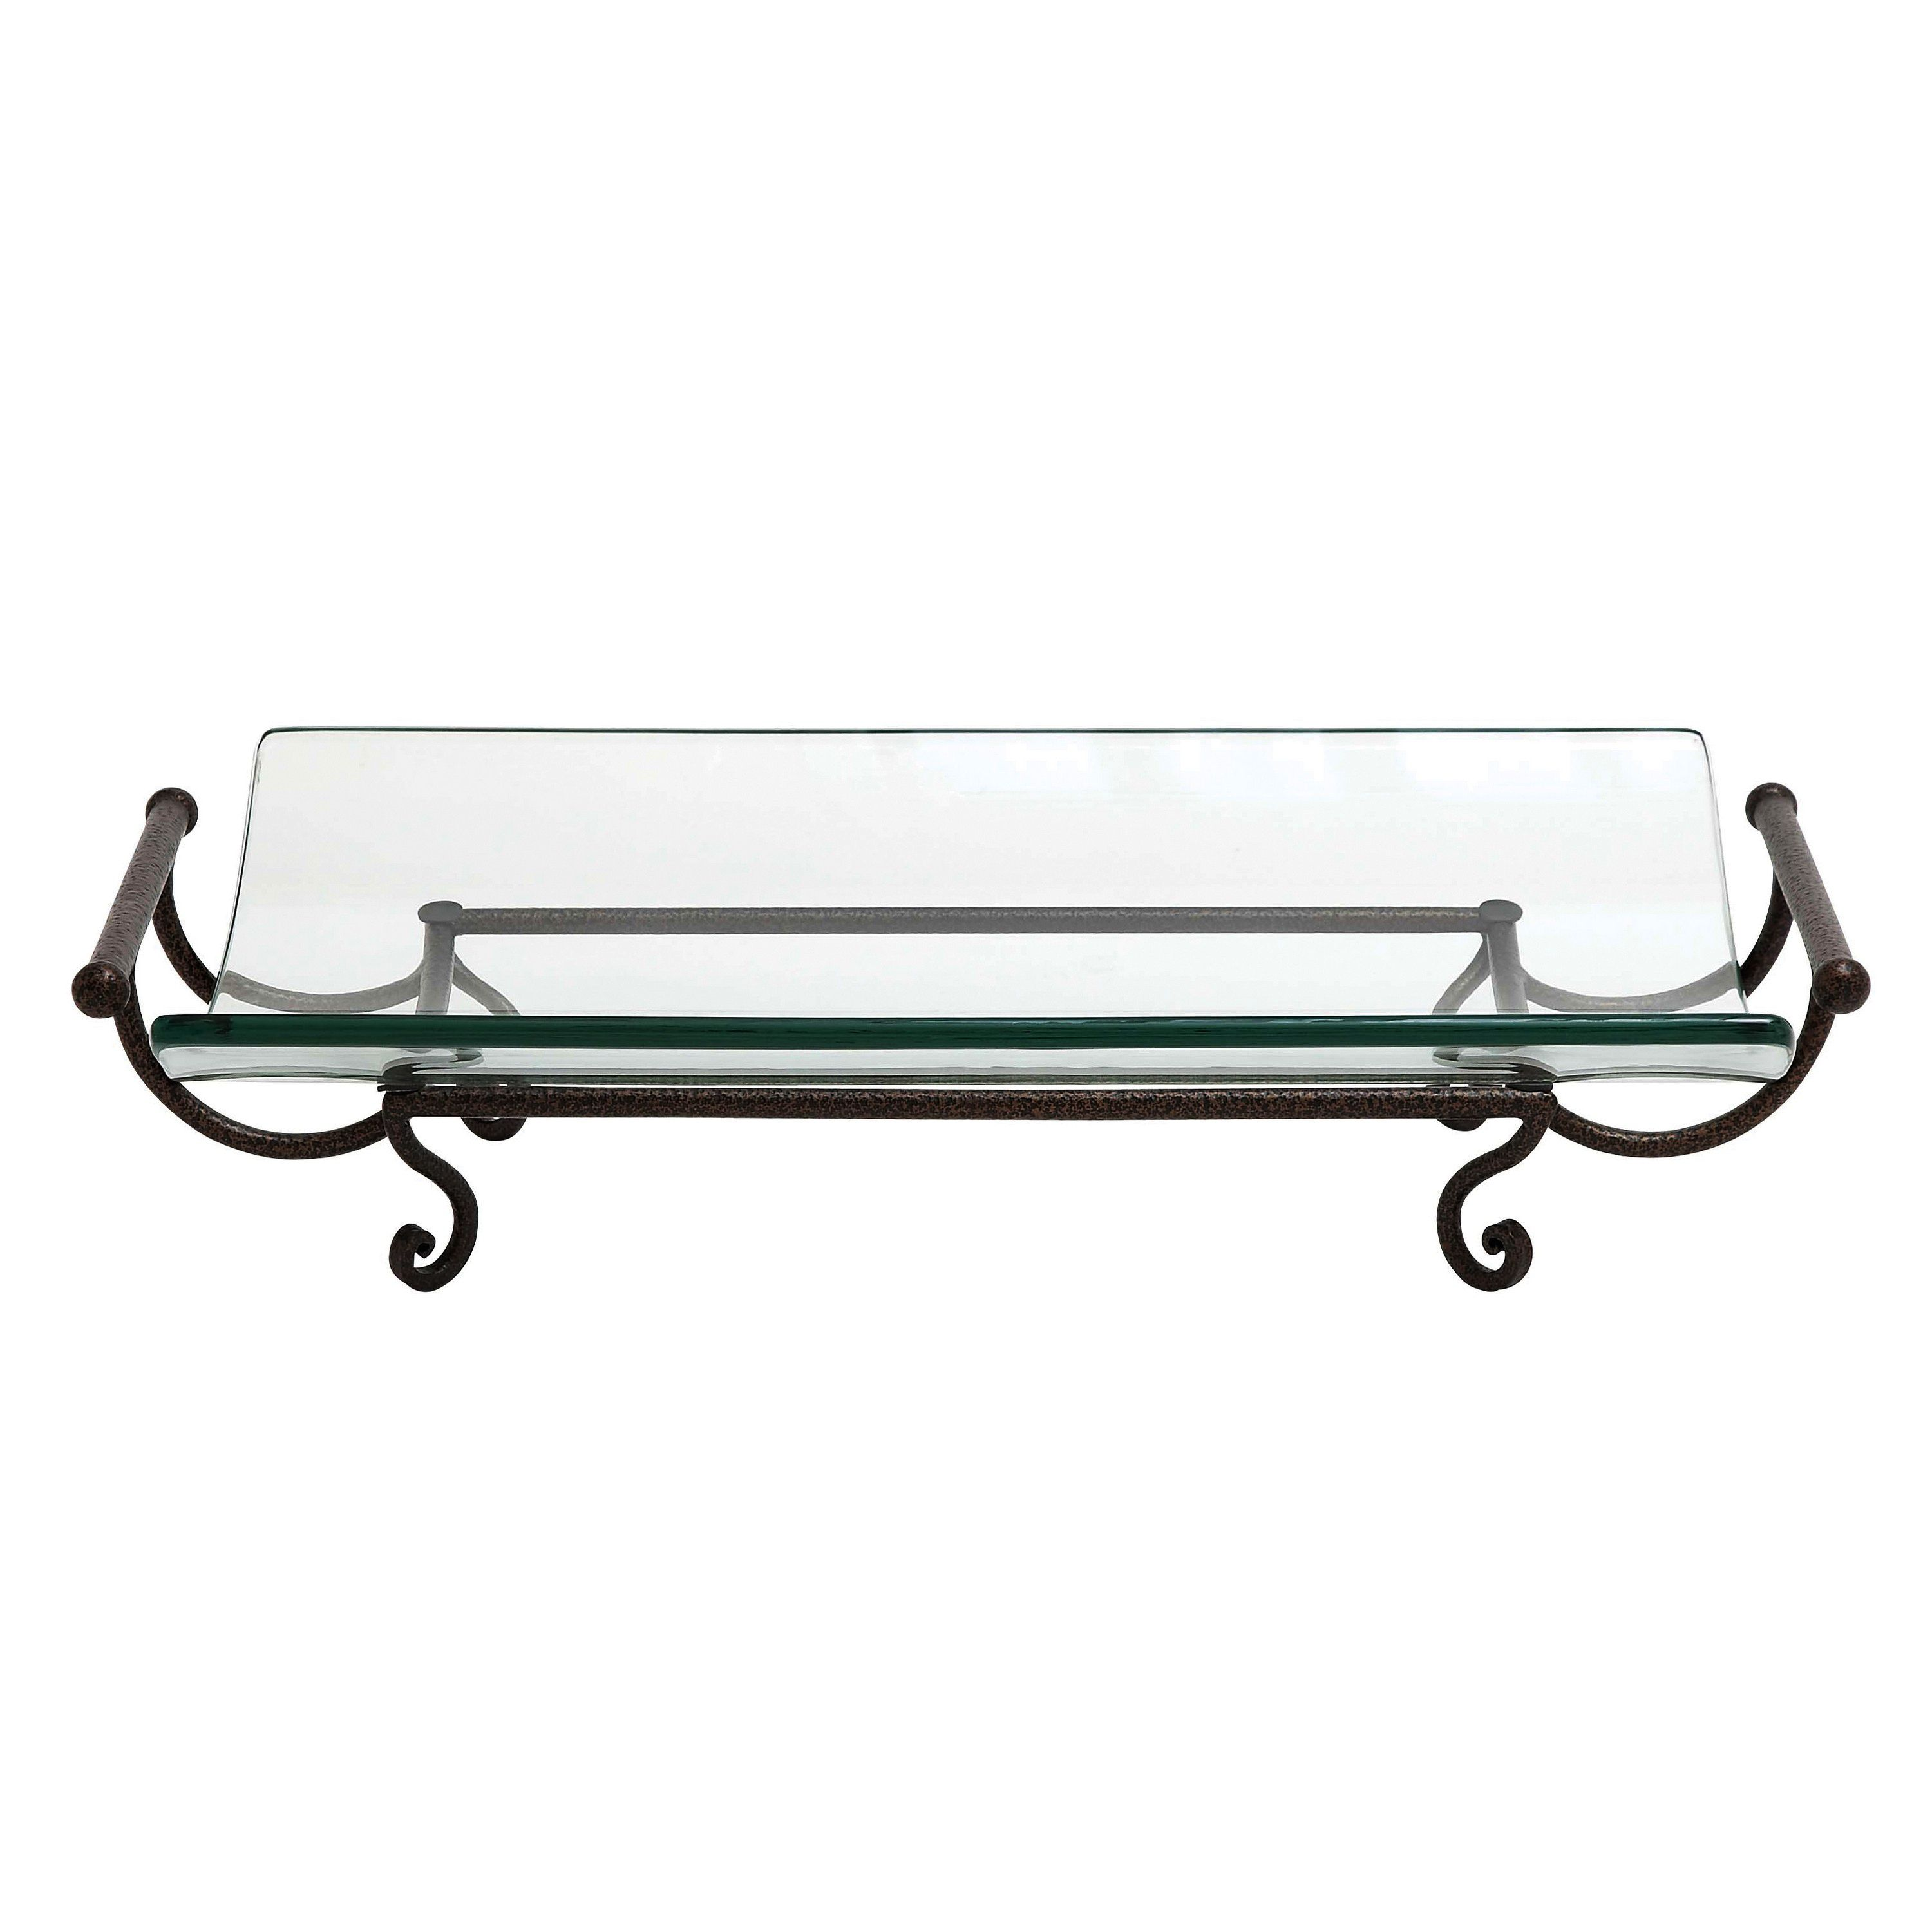 This artful piece is a great decoration on dining tables as well as cocktail and side tables. The translucent glass bowl is cradled in a metal stand and is an ideal display piece.  It is stunning on its own or filled with decorative balls or accents.